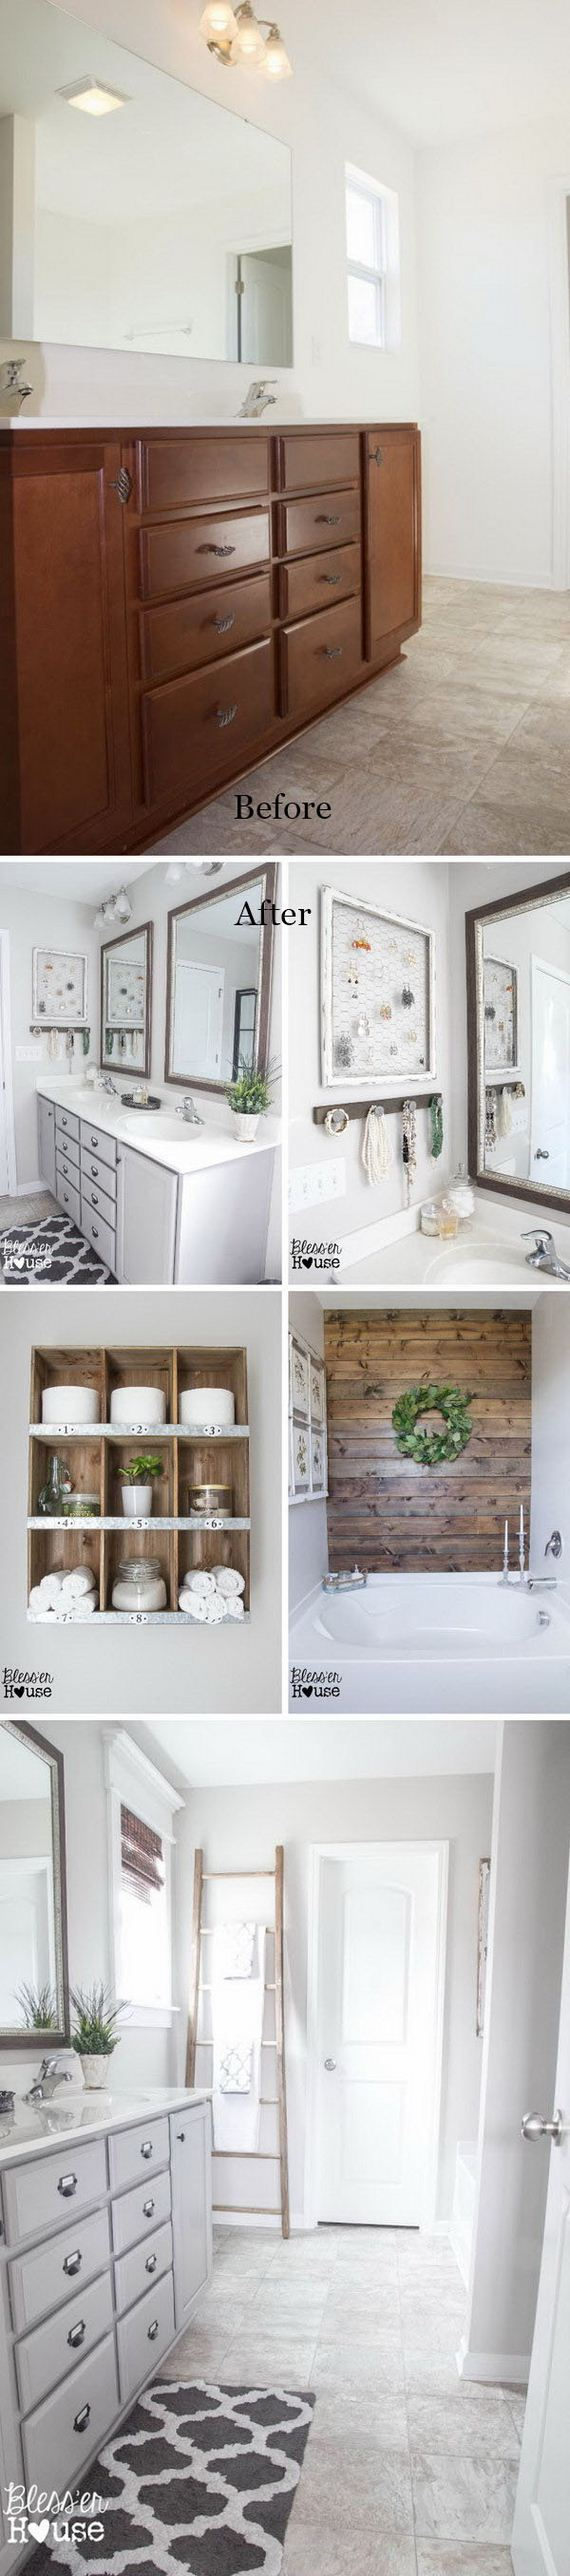 07-awesome-bathroom-makeovers